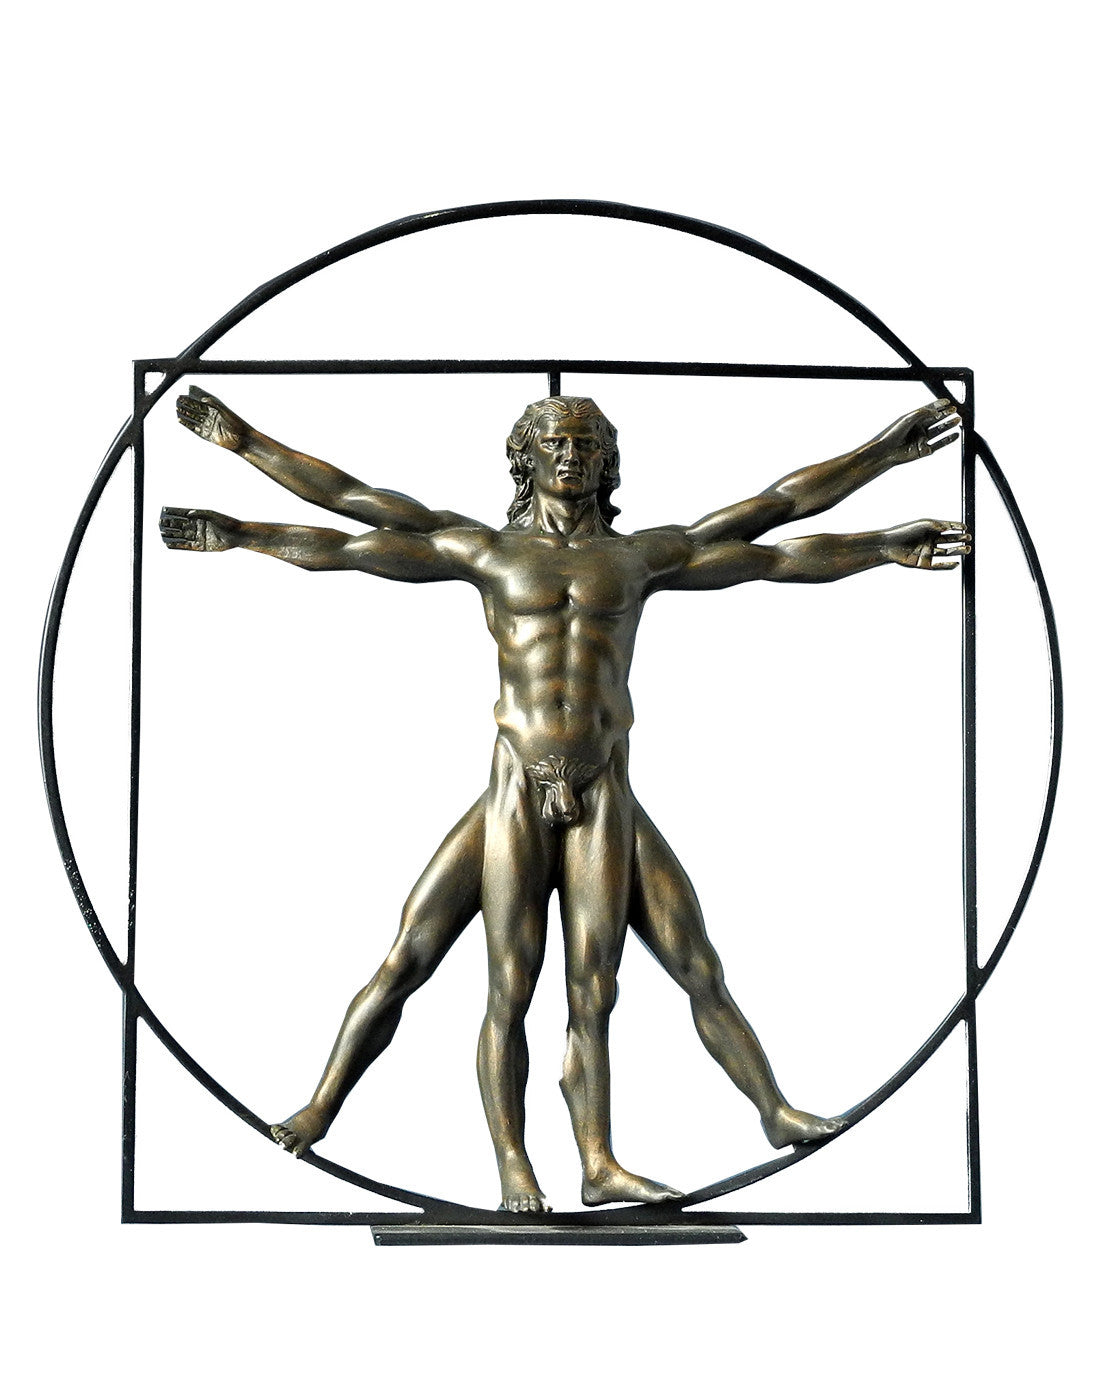 Da Vinci The Vitruvian Man (Bronze) - Law Suits and More